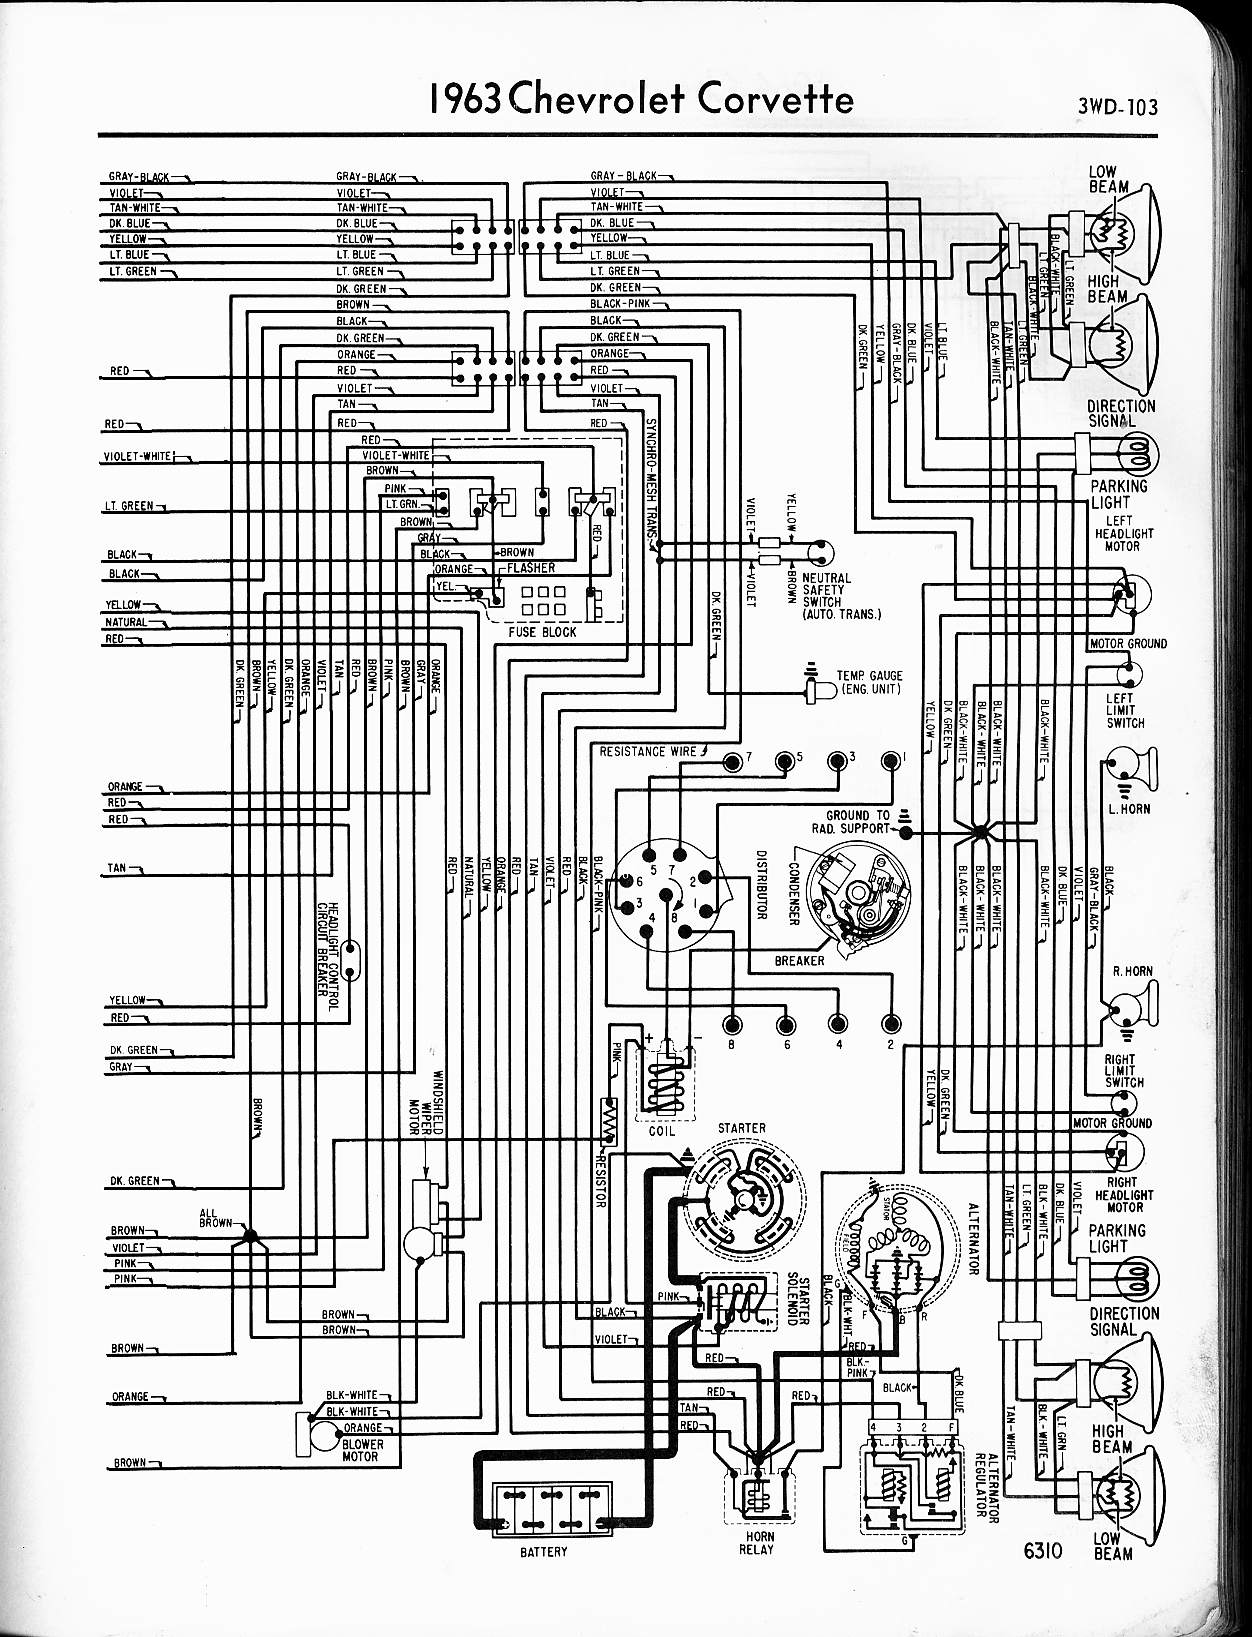 72 Corvette Wiring Diagram Free For You 1972 Chevy Truck Headlight Schematics Rh Ksefanzone Com Wiper